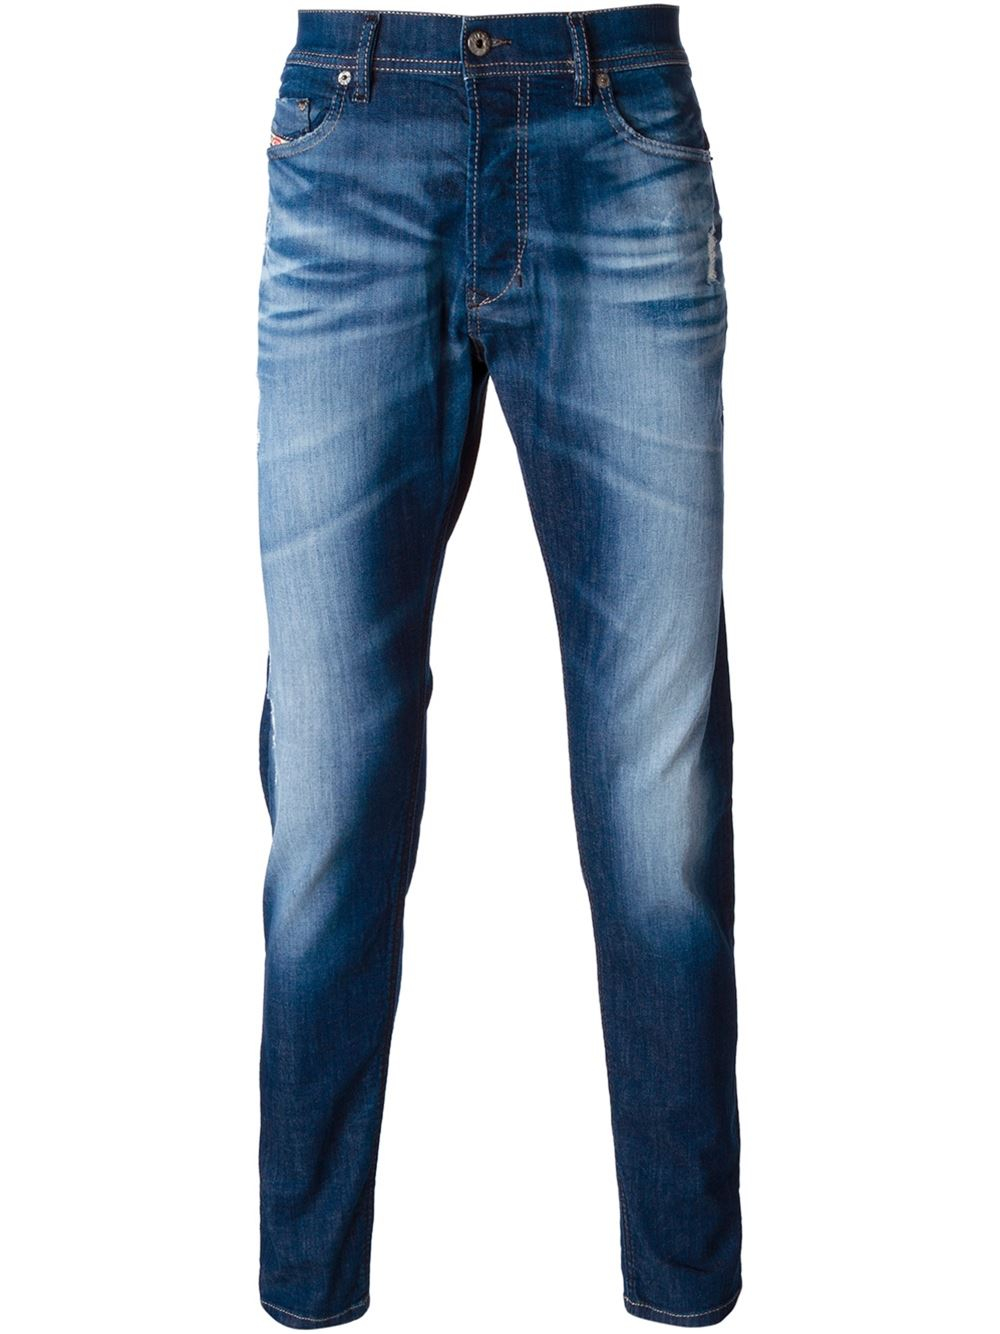 lyst diesel stone washed jeans in blue for men. Black Bedroom Furniture Sets. Home Design Ideas